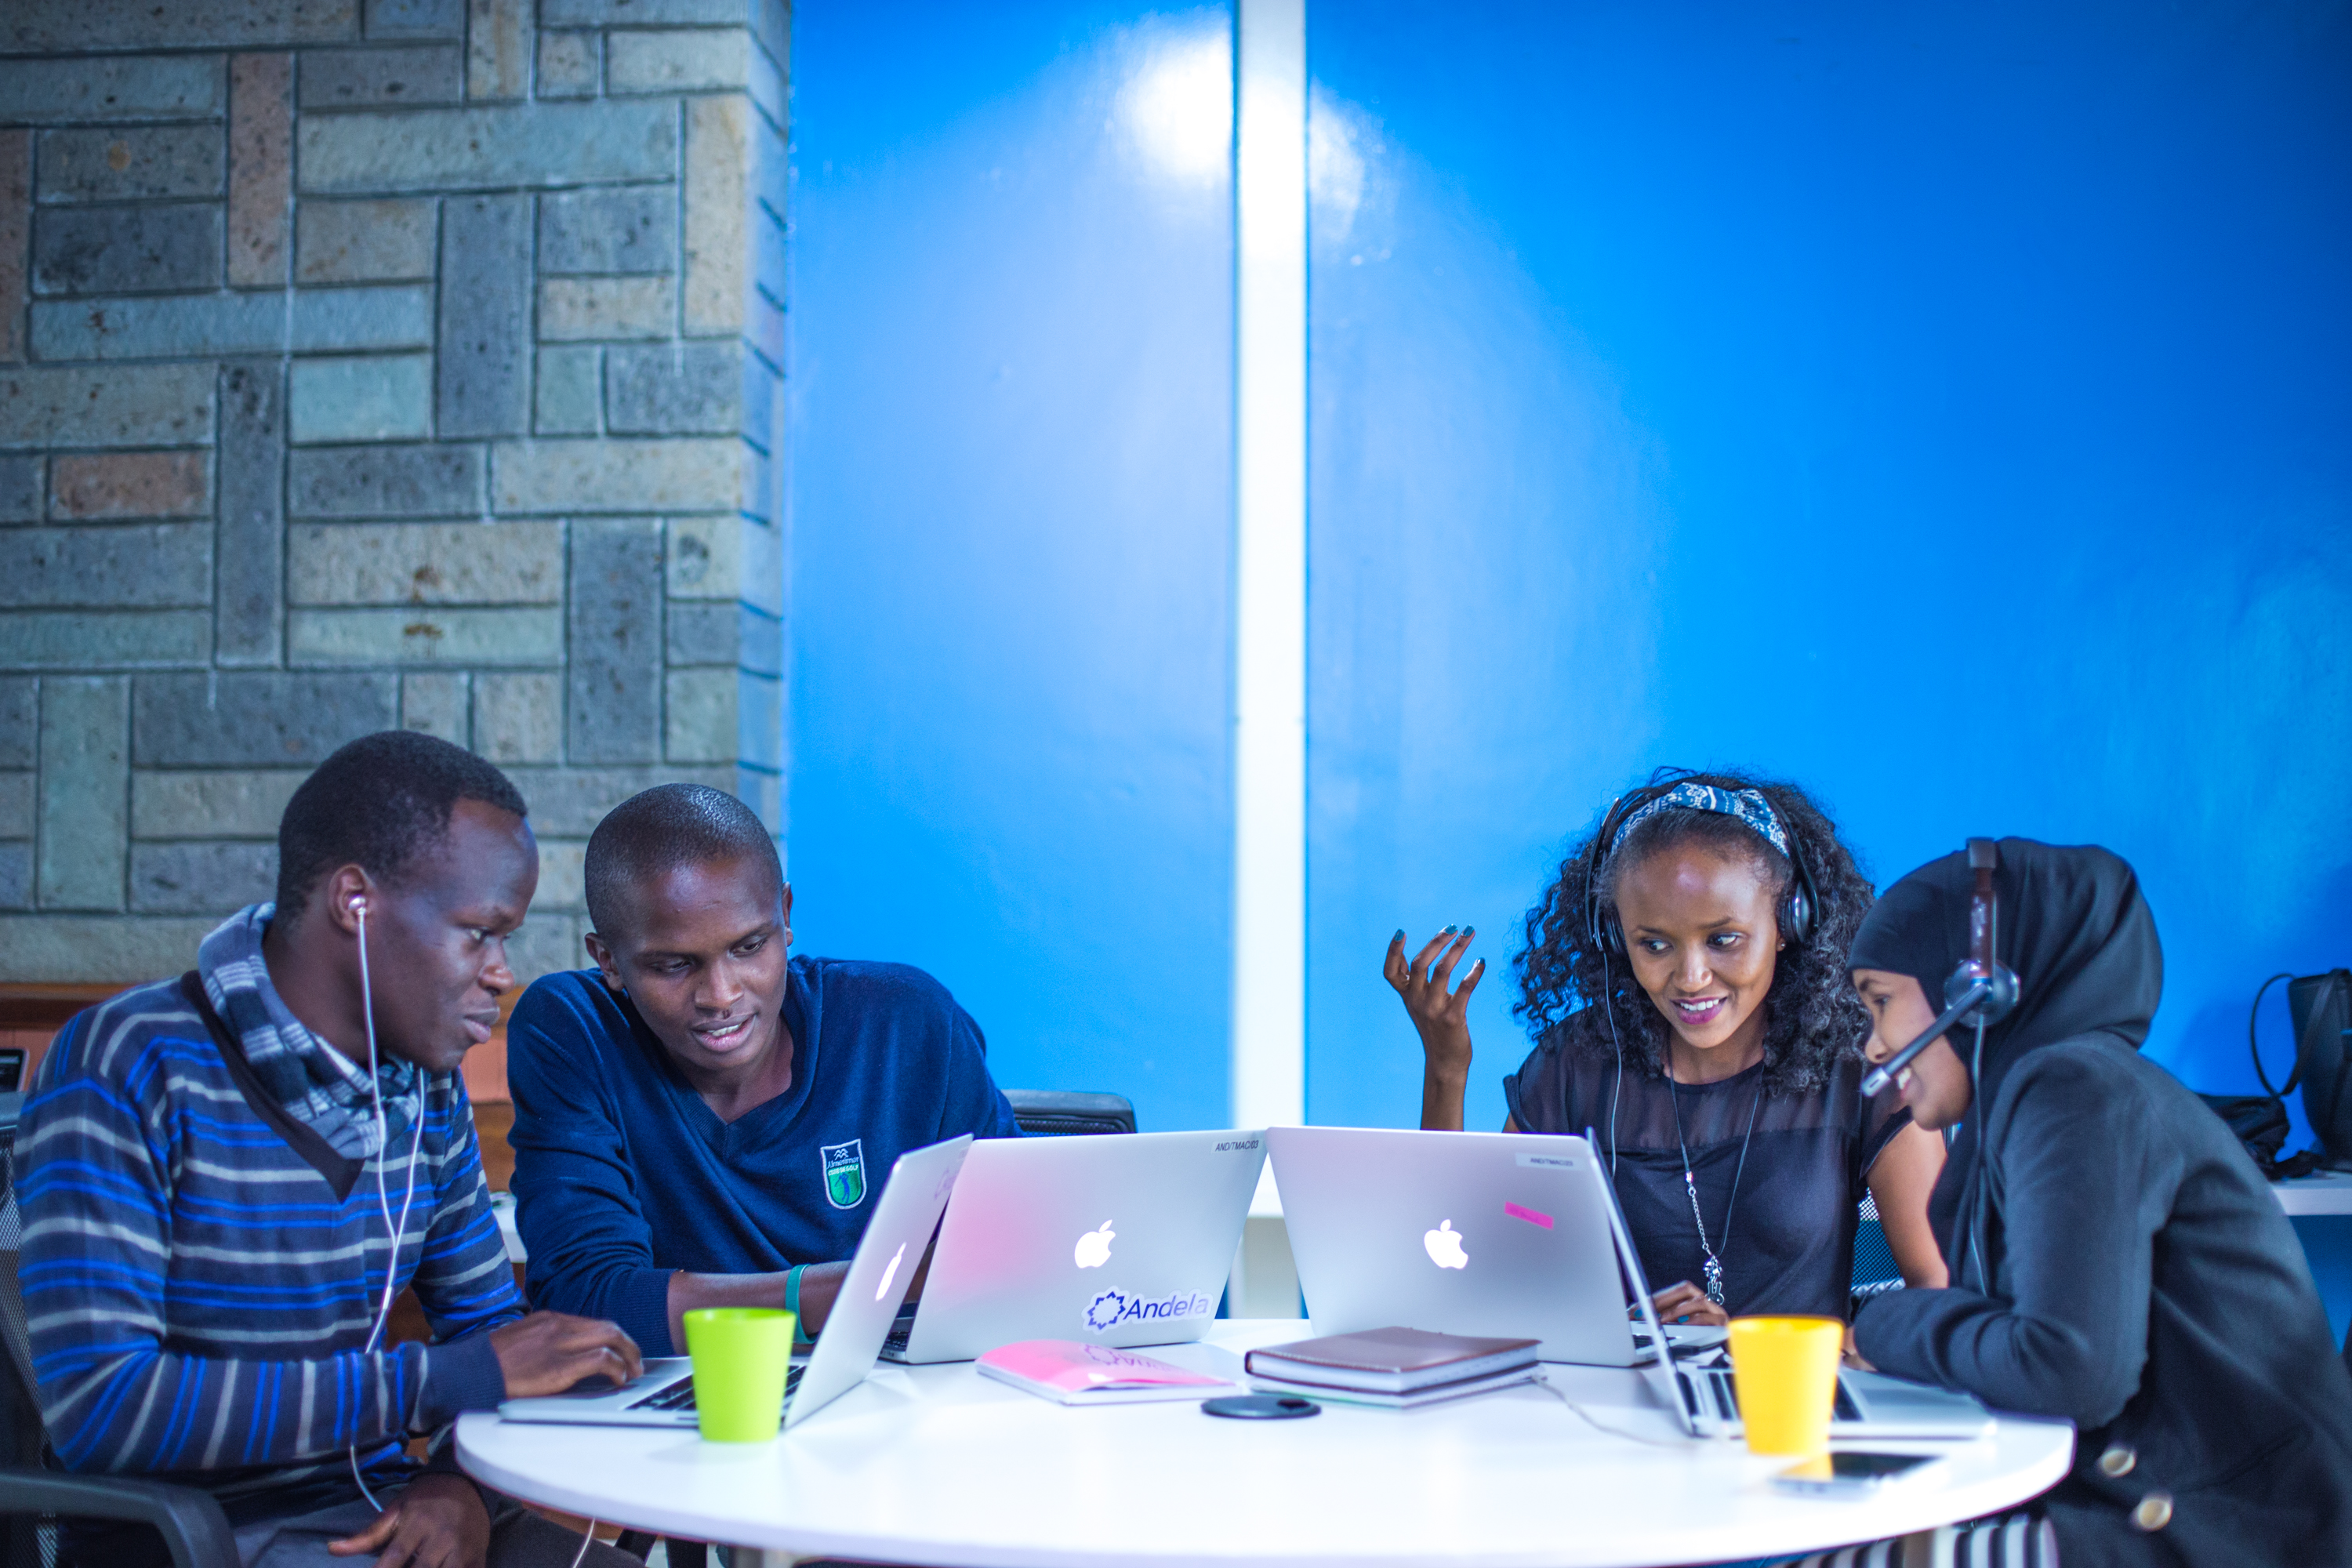 Want to learn about African immigrants? Mr. President, meet Africa's tech sector